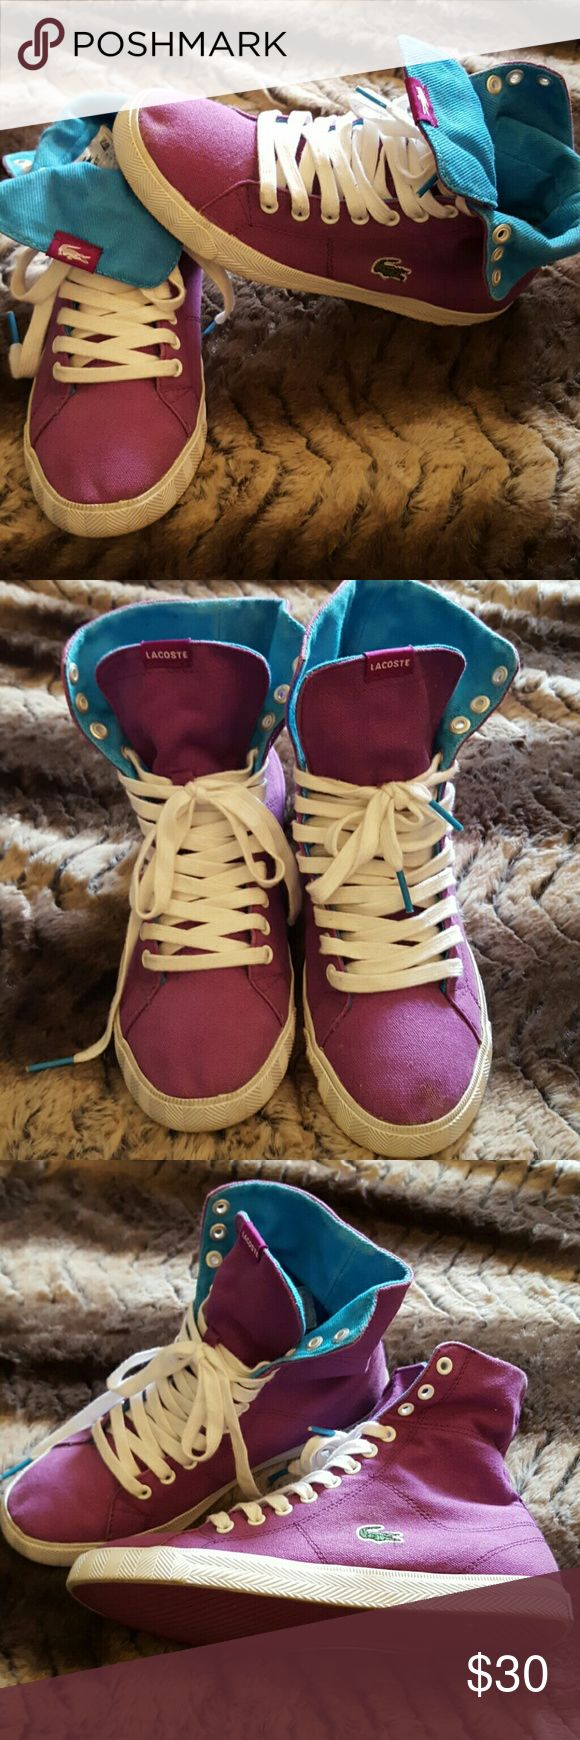 SALE ??LACOSTE SNEAKERS Condition 9/10 , color purple ,size 6.5,worn couple of times, if you have any questions just let me know. Thanks Lacoste Shoes Sneakers